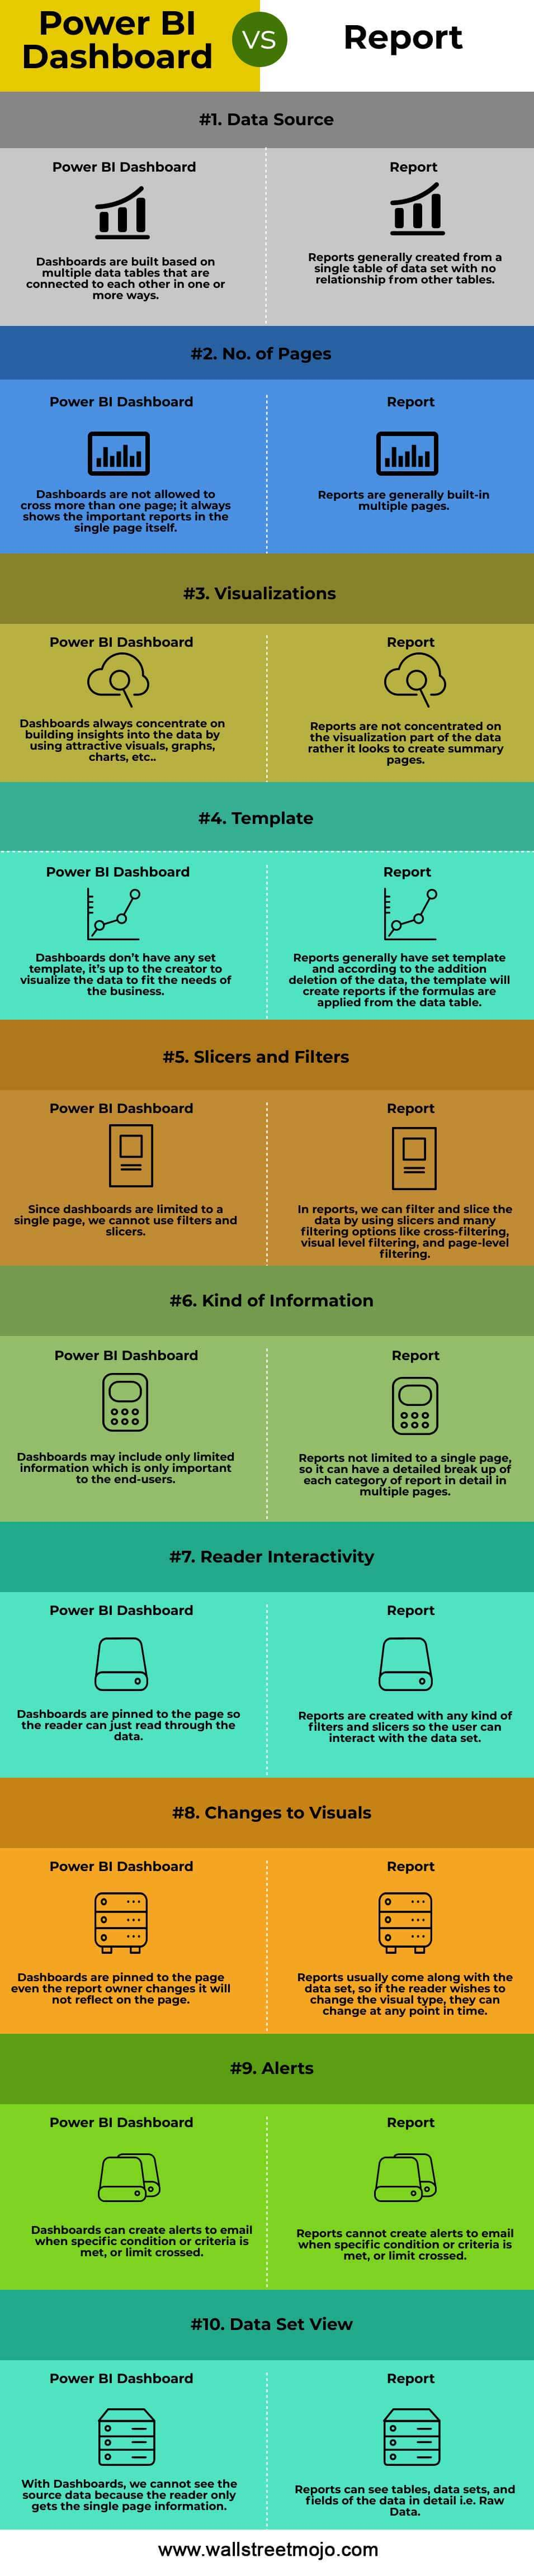 Power-BI-Dashboard-vs-Report-infographics